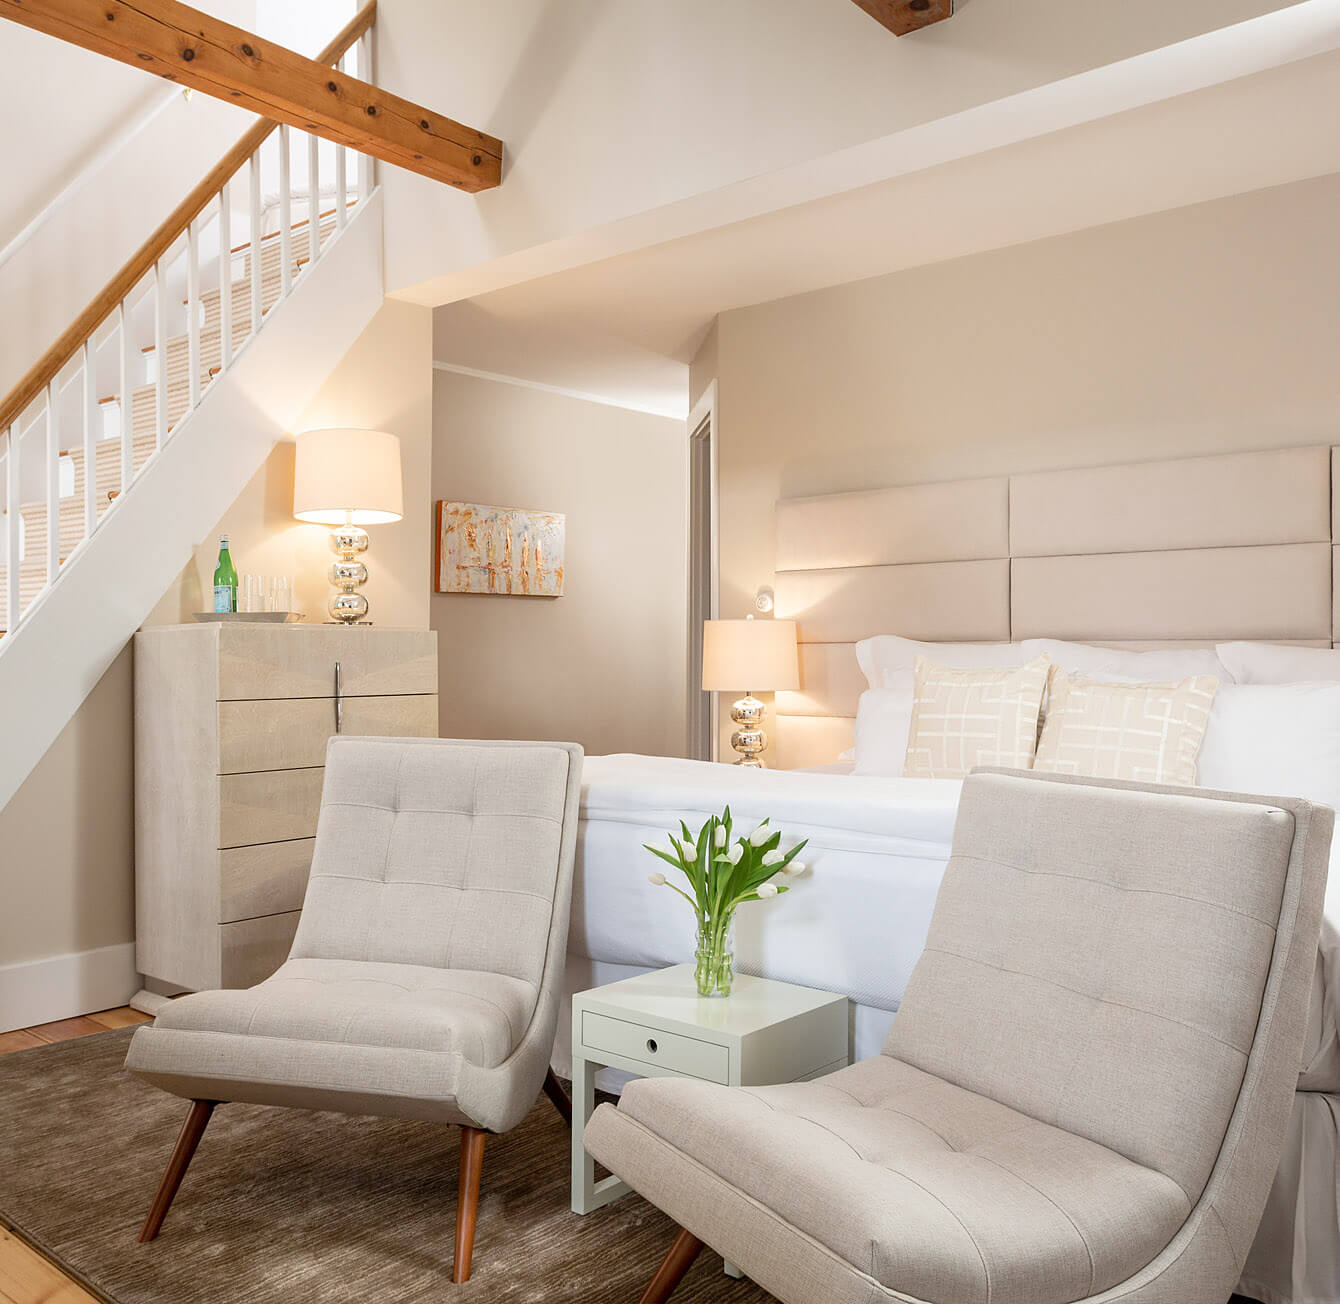 Relais & Châteaux hotel with beige furnishings in Cape Cod